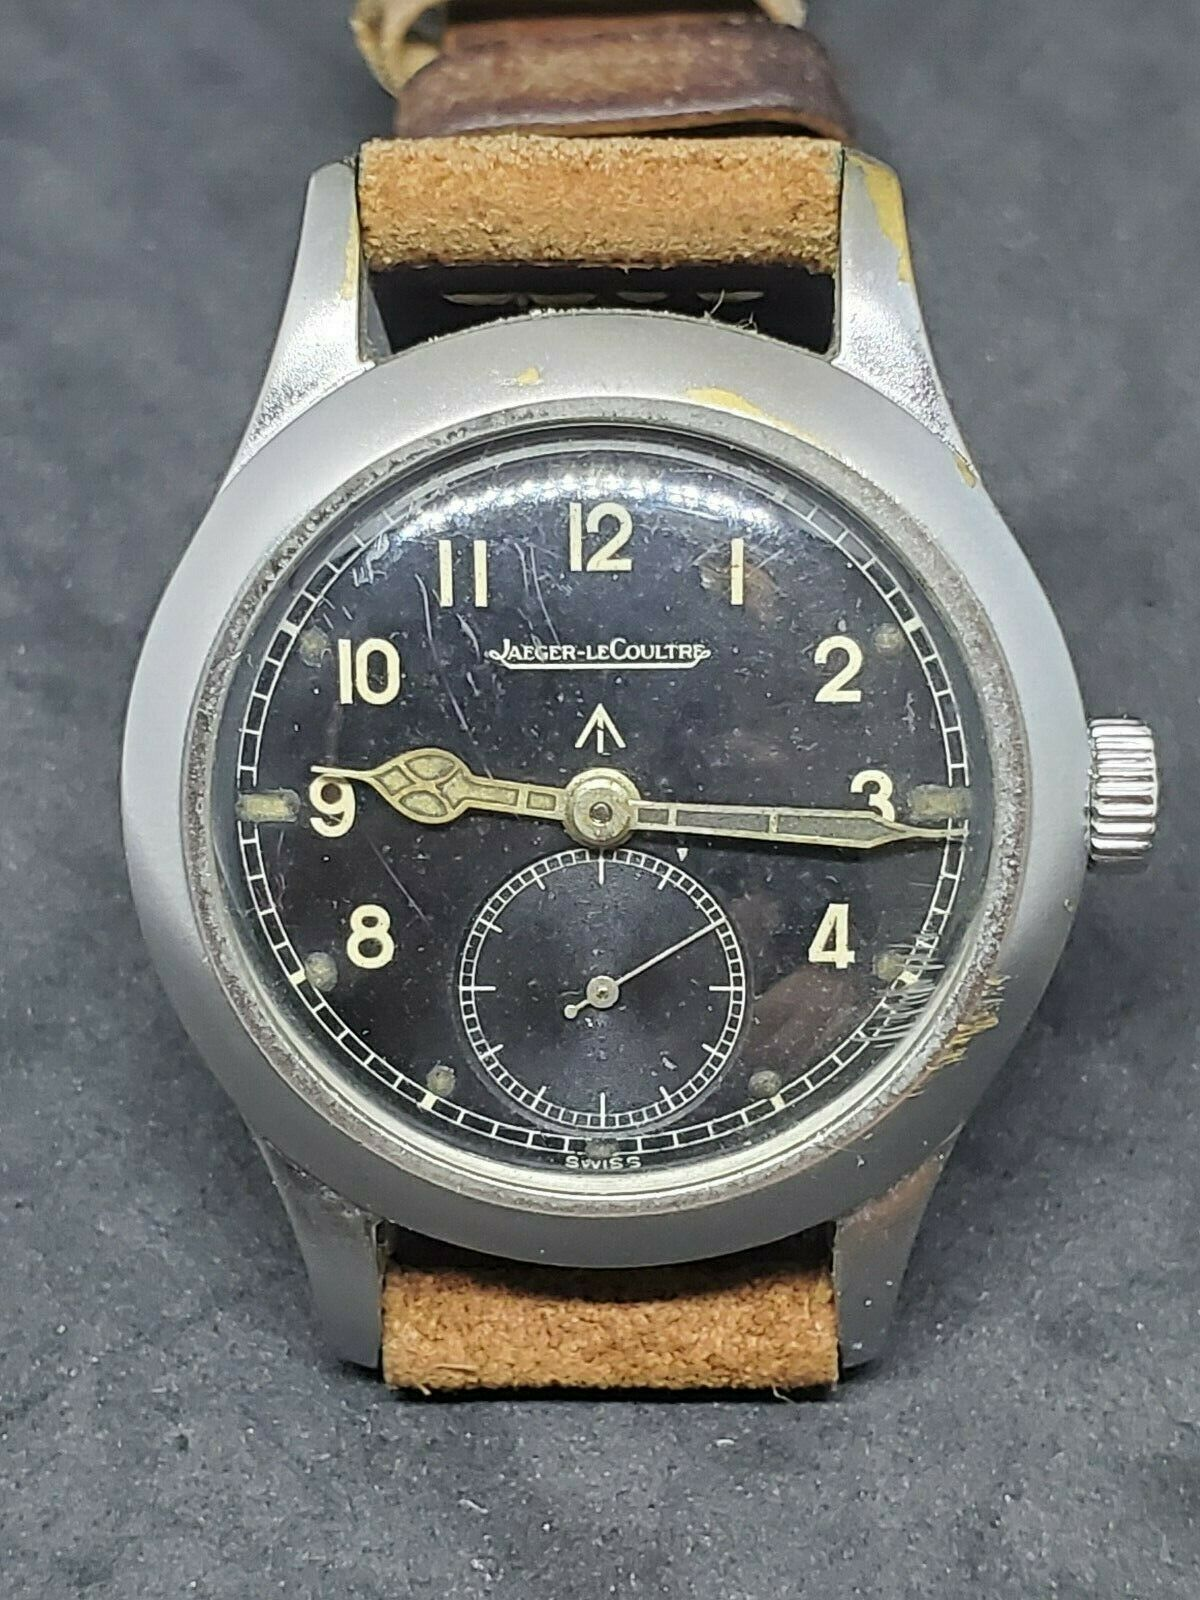 Rare 1944 Jaeger-LeCoultre JLC Royal Australian Air Force WWW Military Watch - watch picture 1